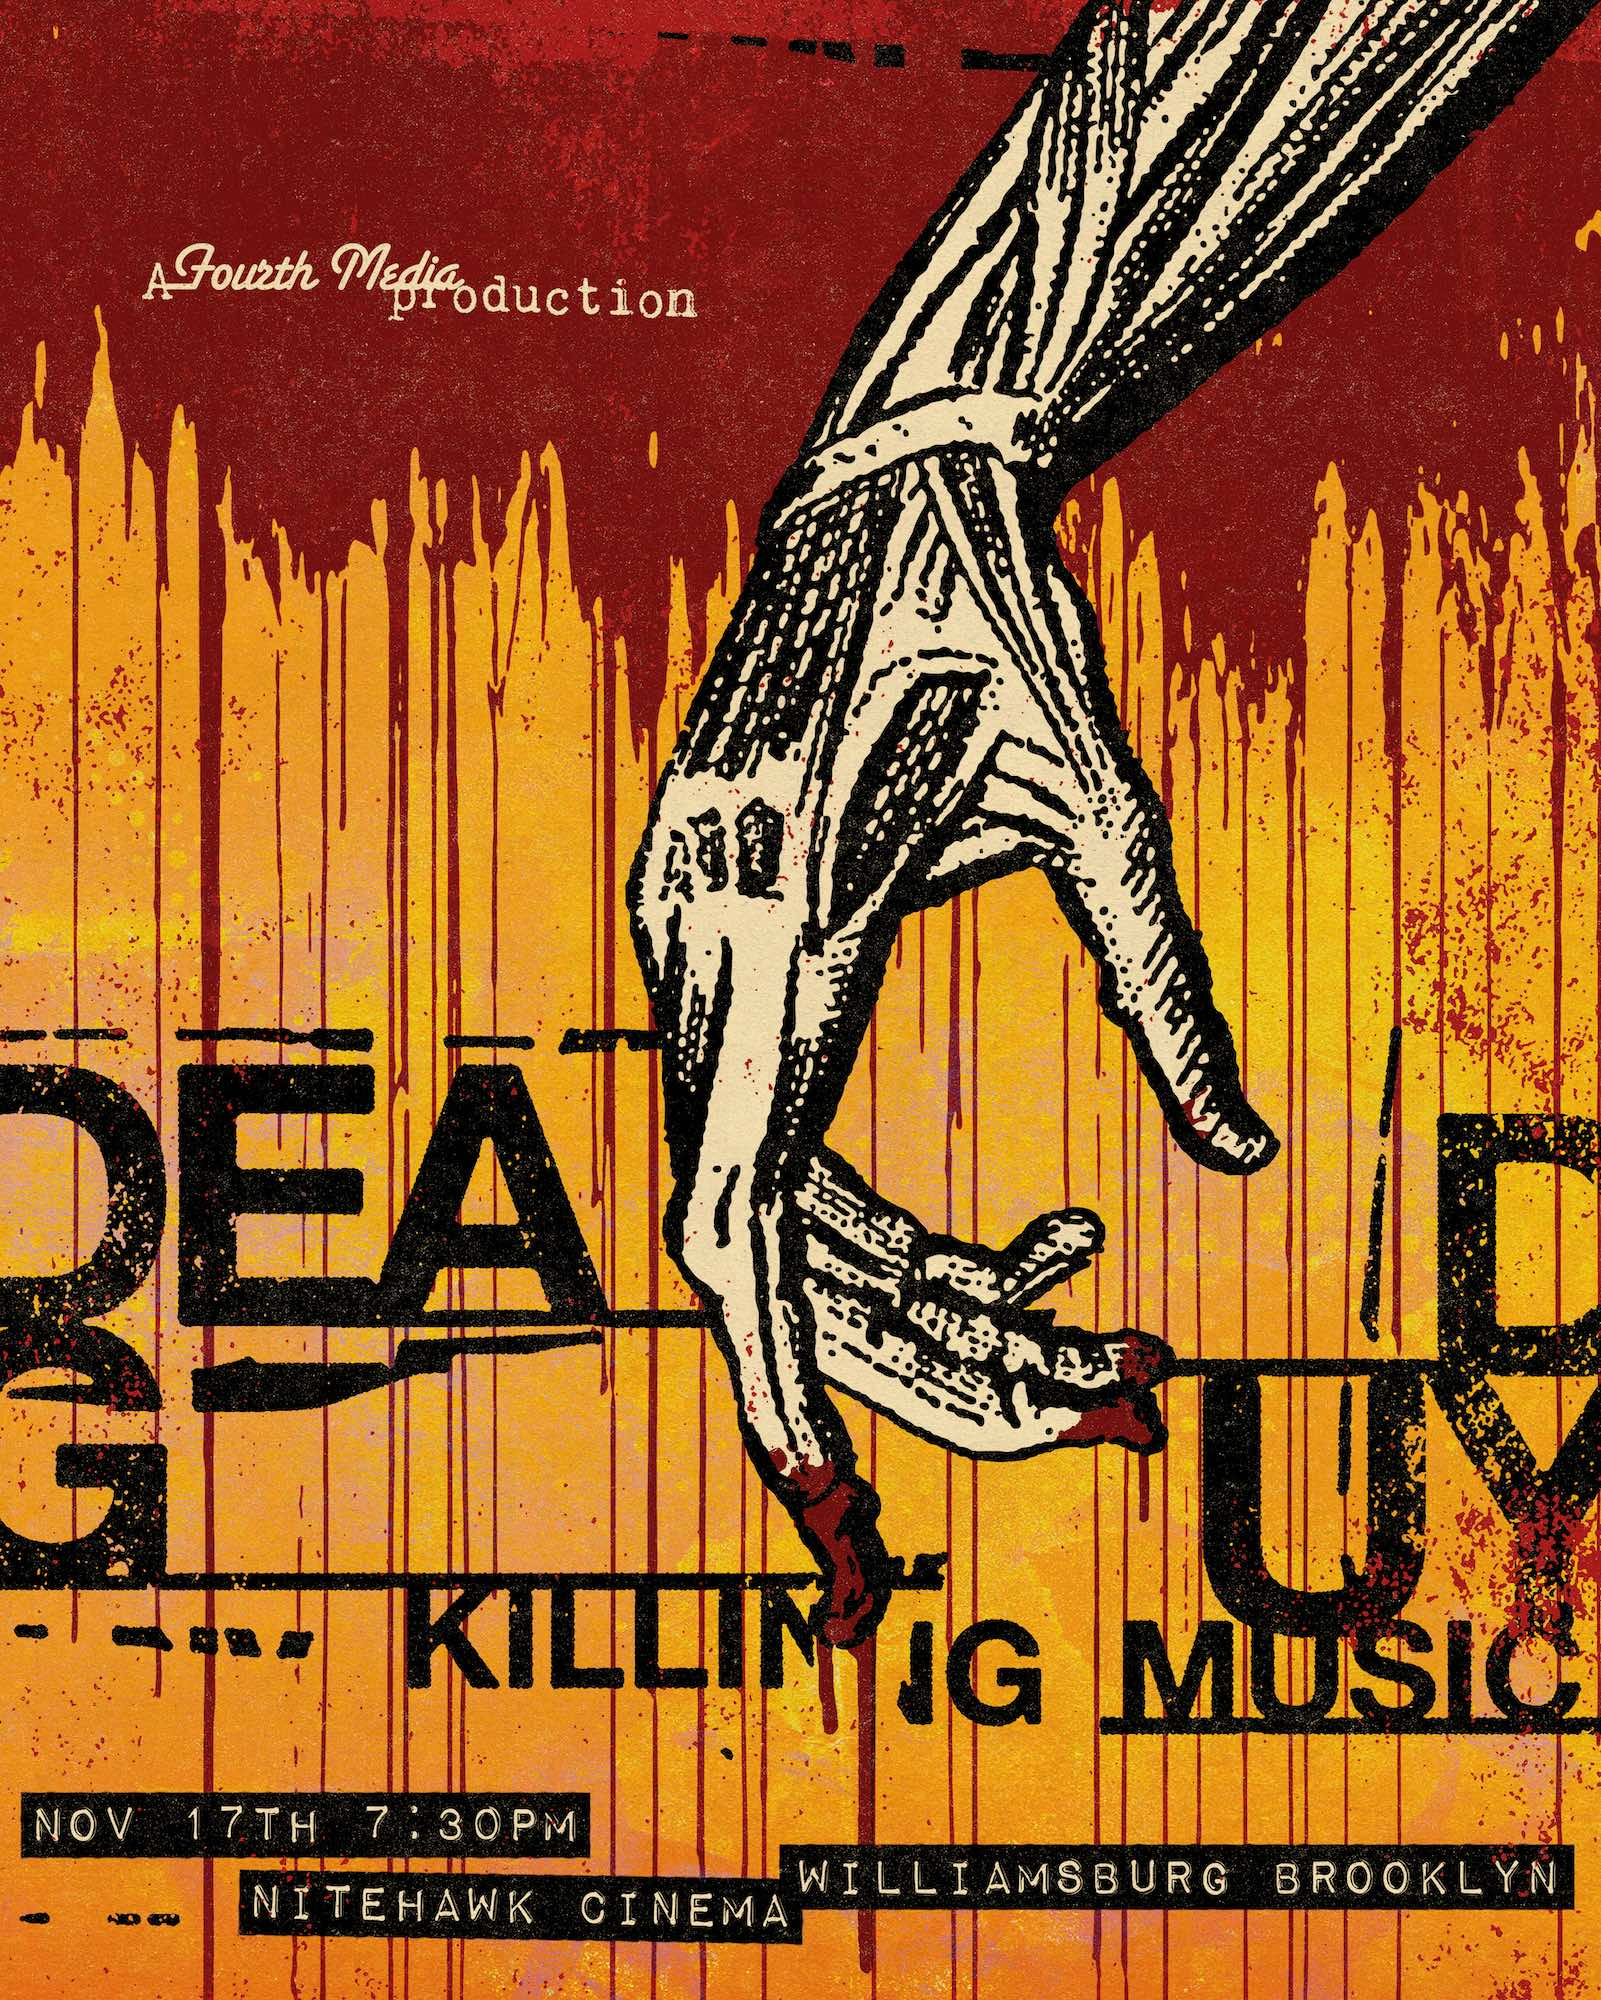 Poster for Deadguy: Killing Music (Q&A with Deadguy and William Saunders)